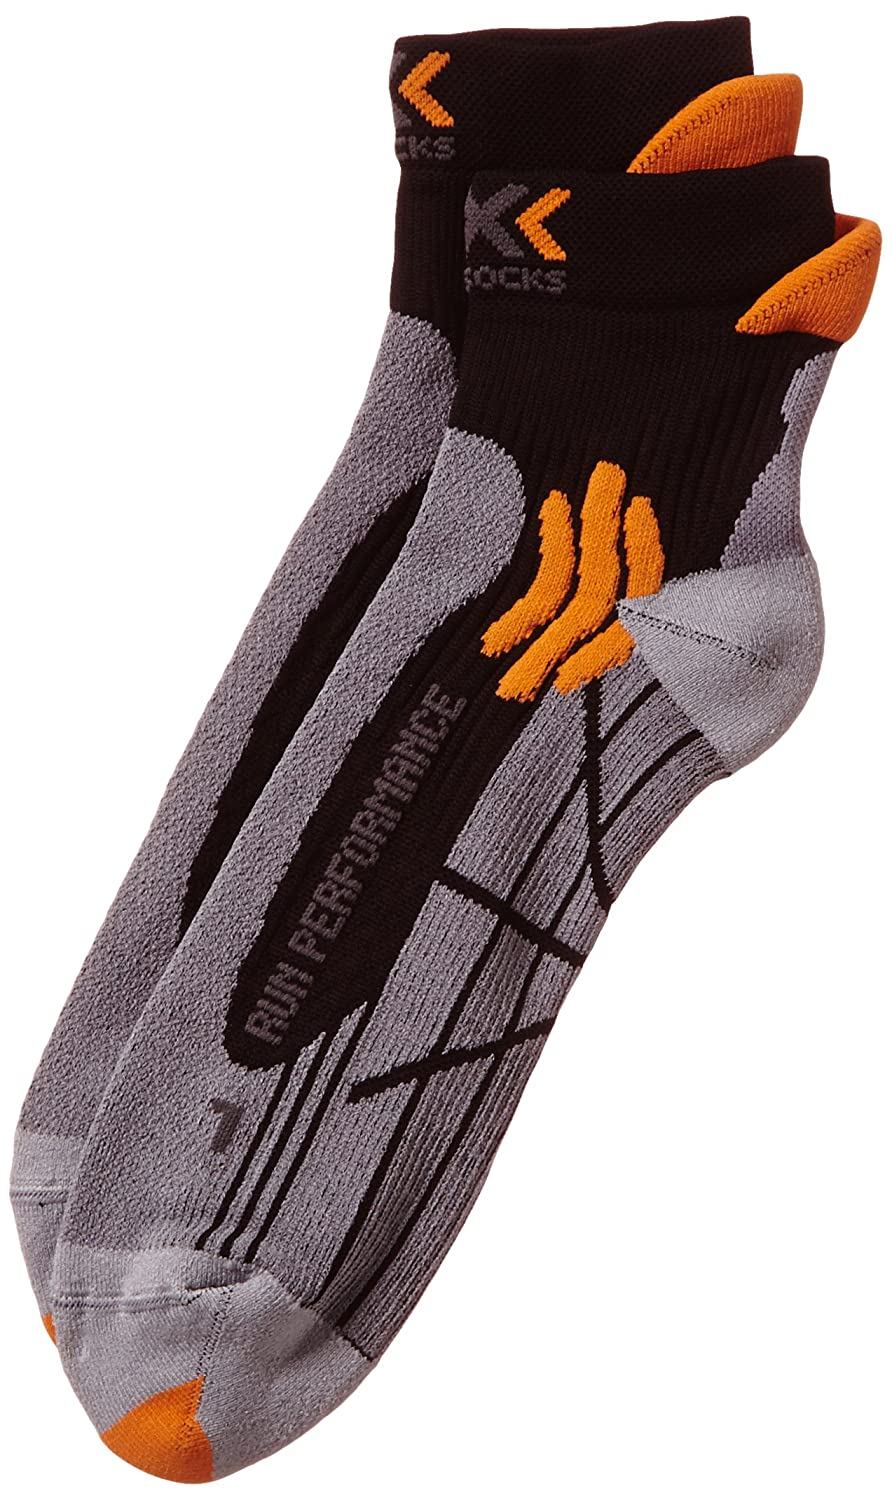 X-SOCKS - Run Performance - Calcetines para hombre: Amazon.es: Deportes y aire libre